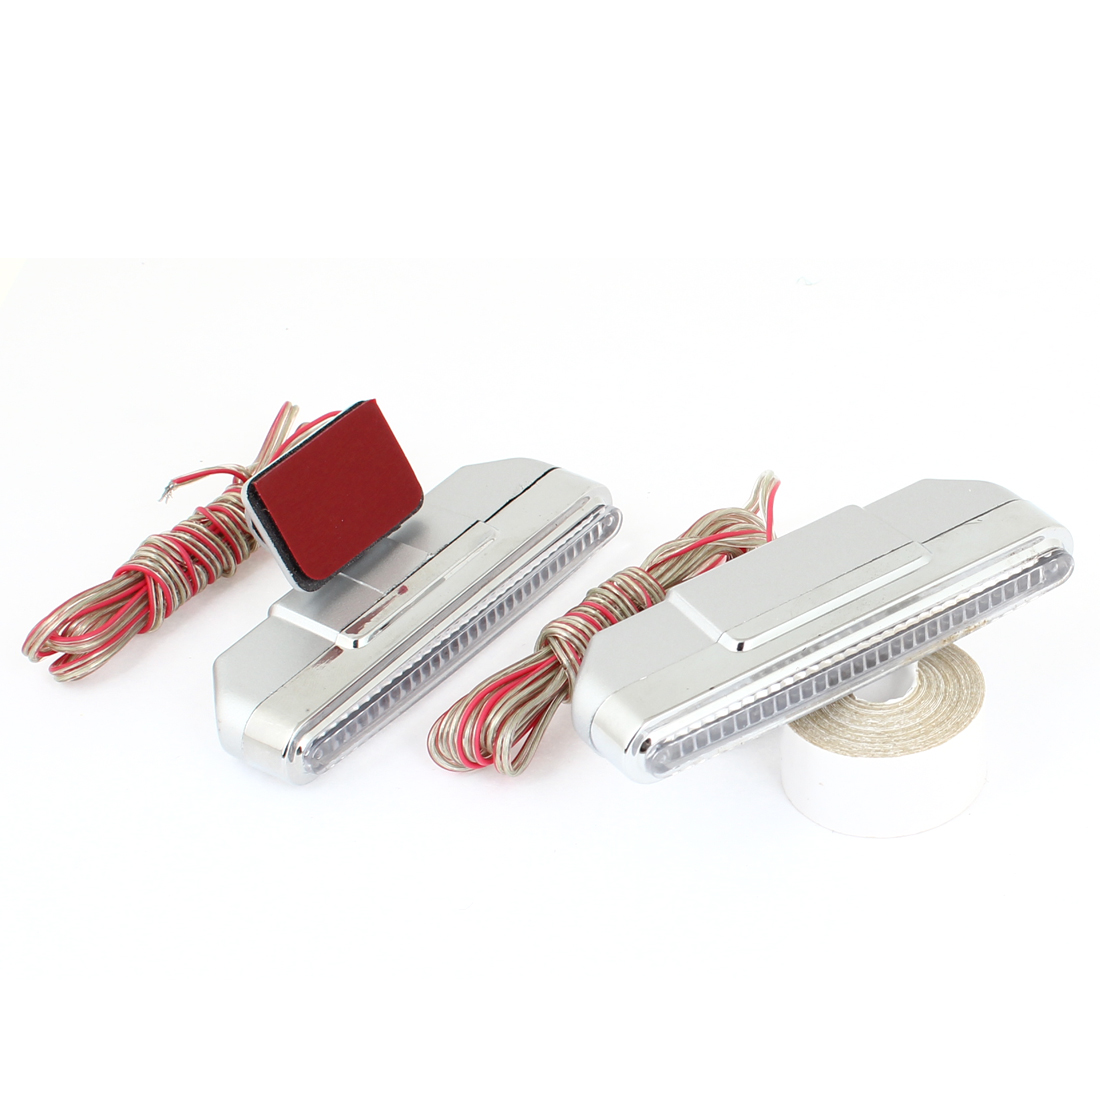 2 Pcs Car Silver Tone Gray Plastic Casing 5 Red LEDs DRL Daytime Running Light